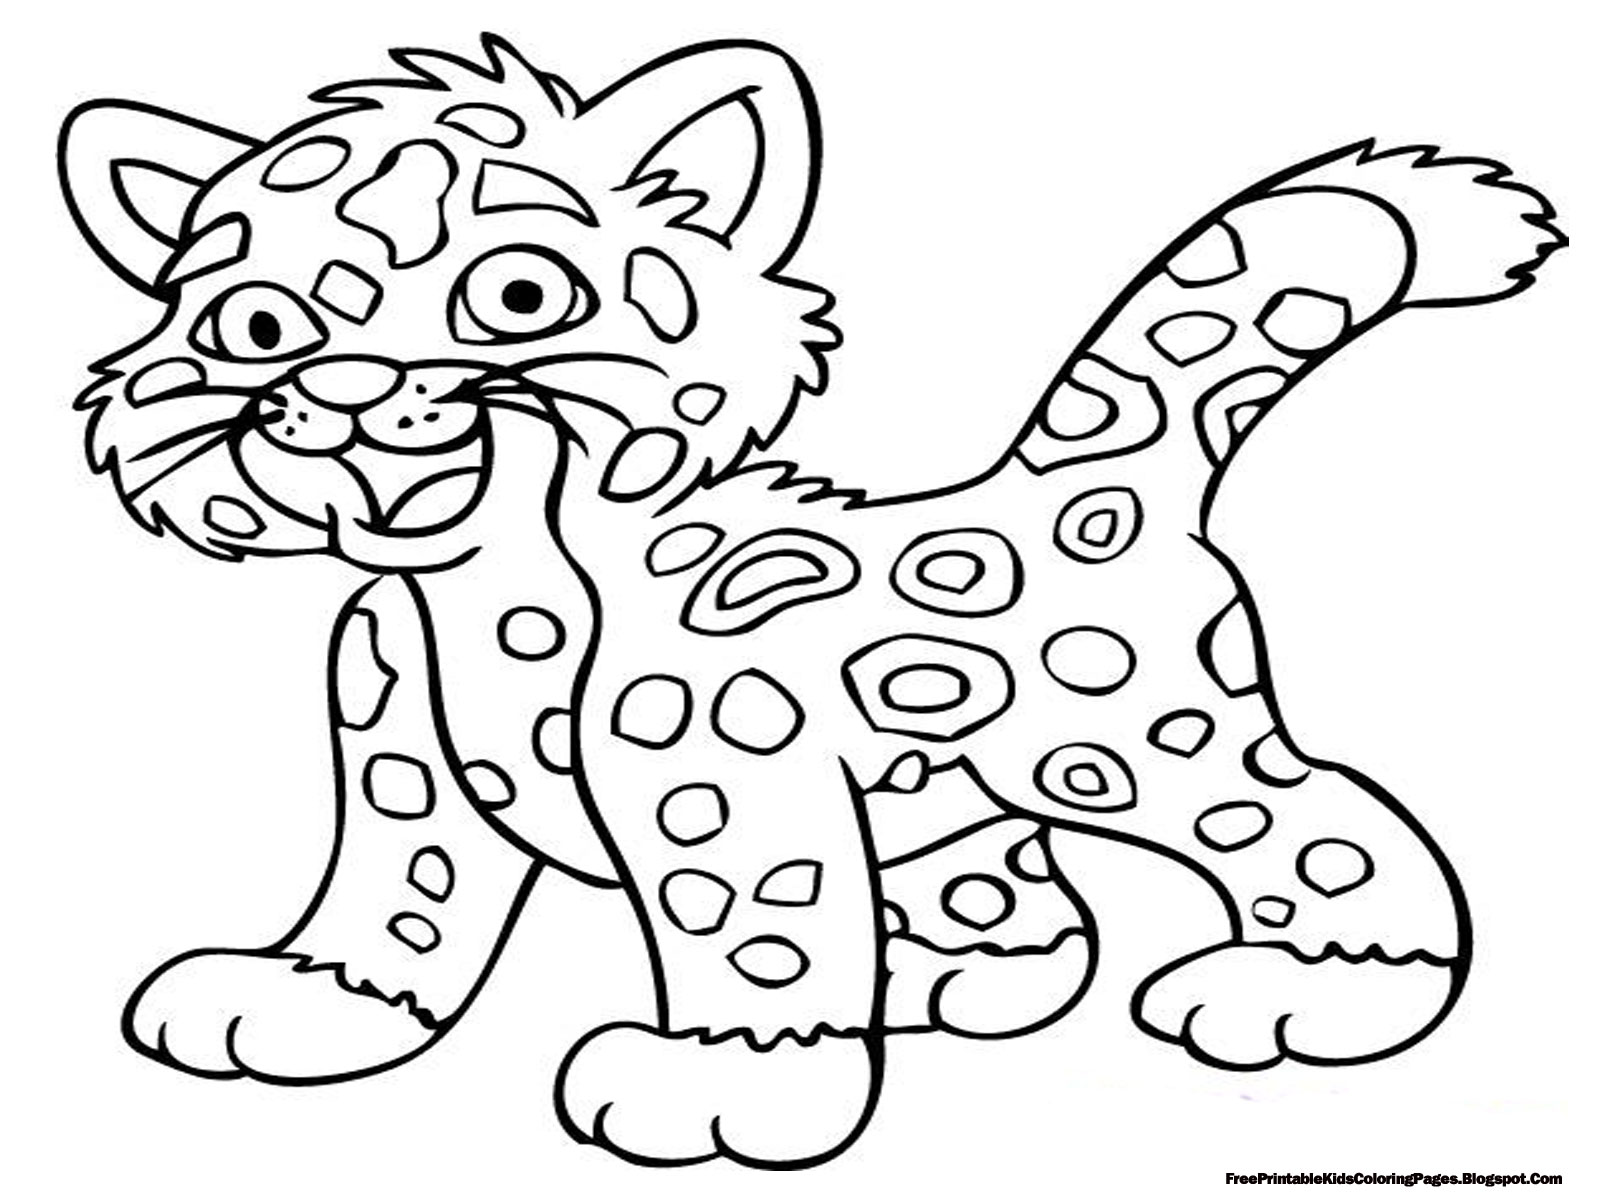 1600x1200 Impressive Coloring Pages For Kids To Print Bo